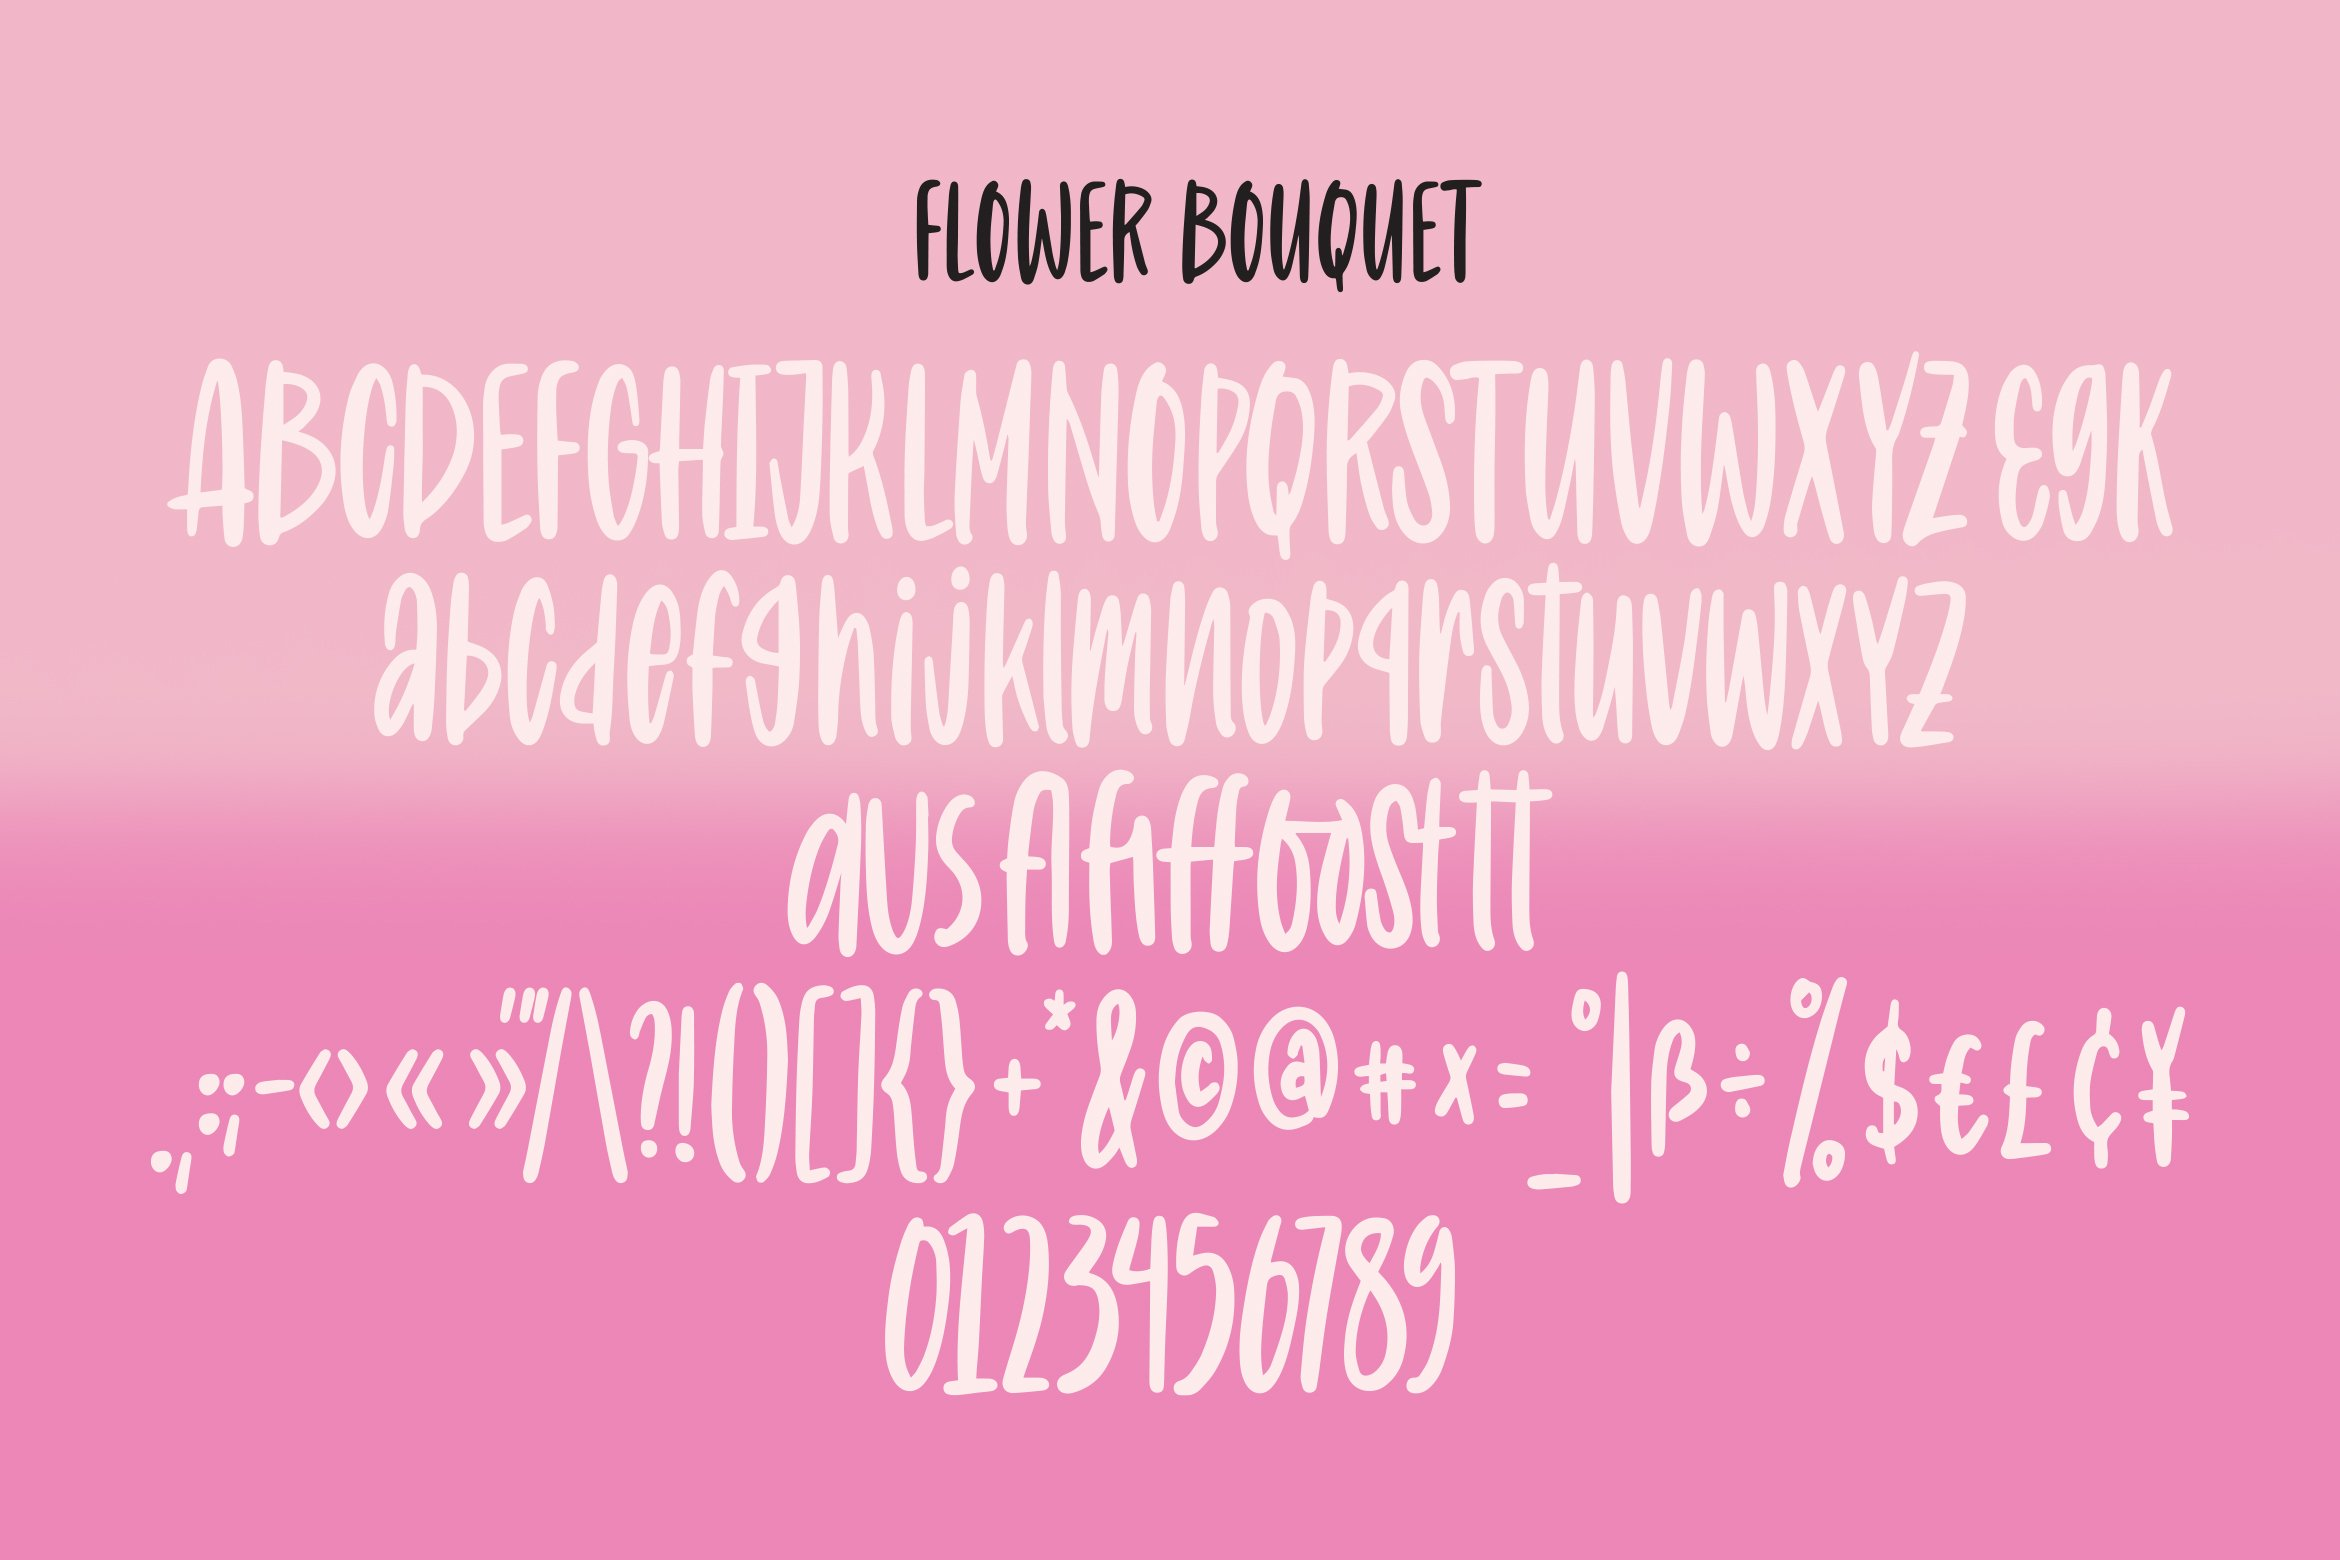 Flower Bouquet - Quirky Handlettering Font example image 2